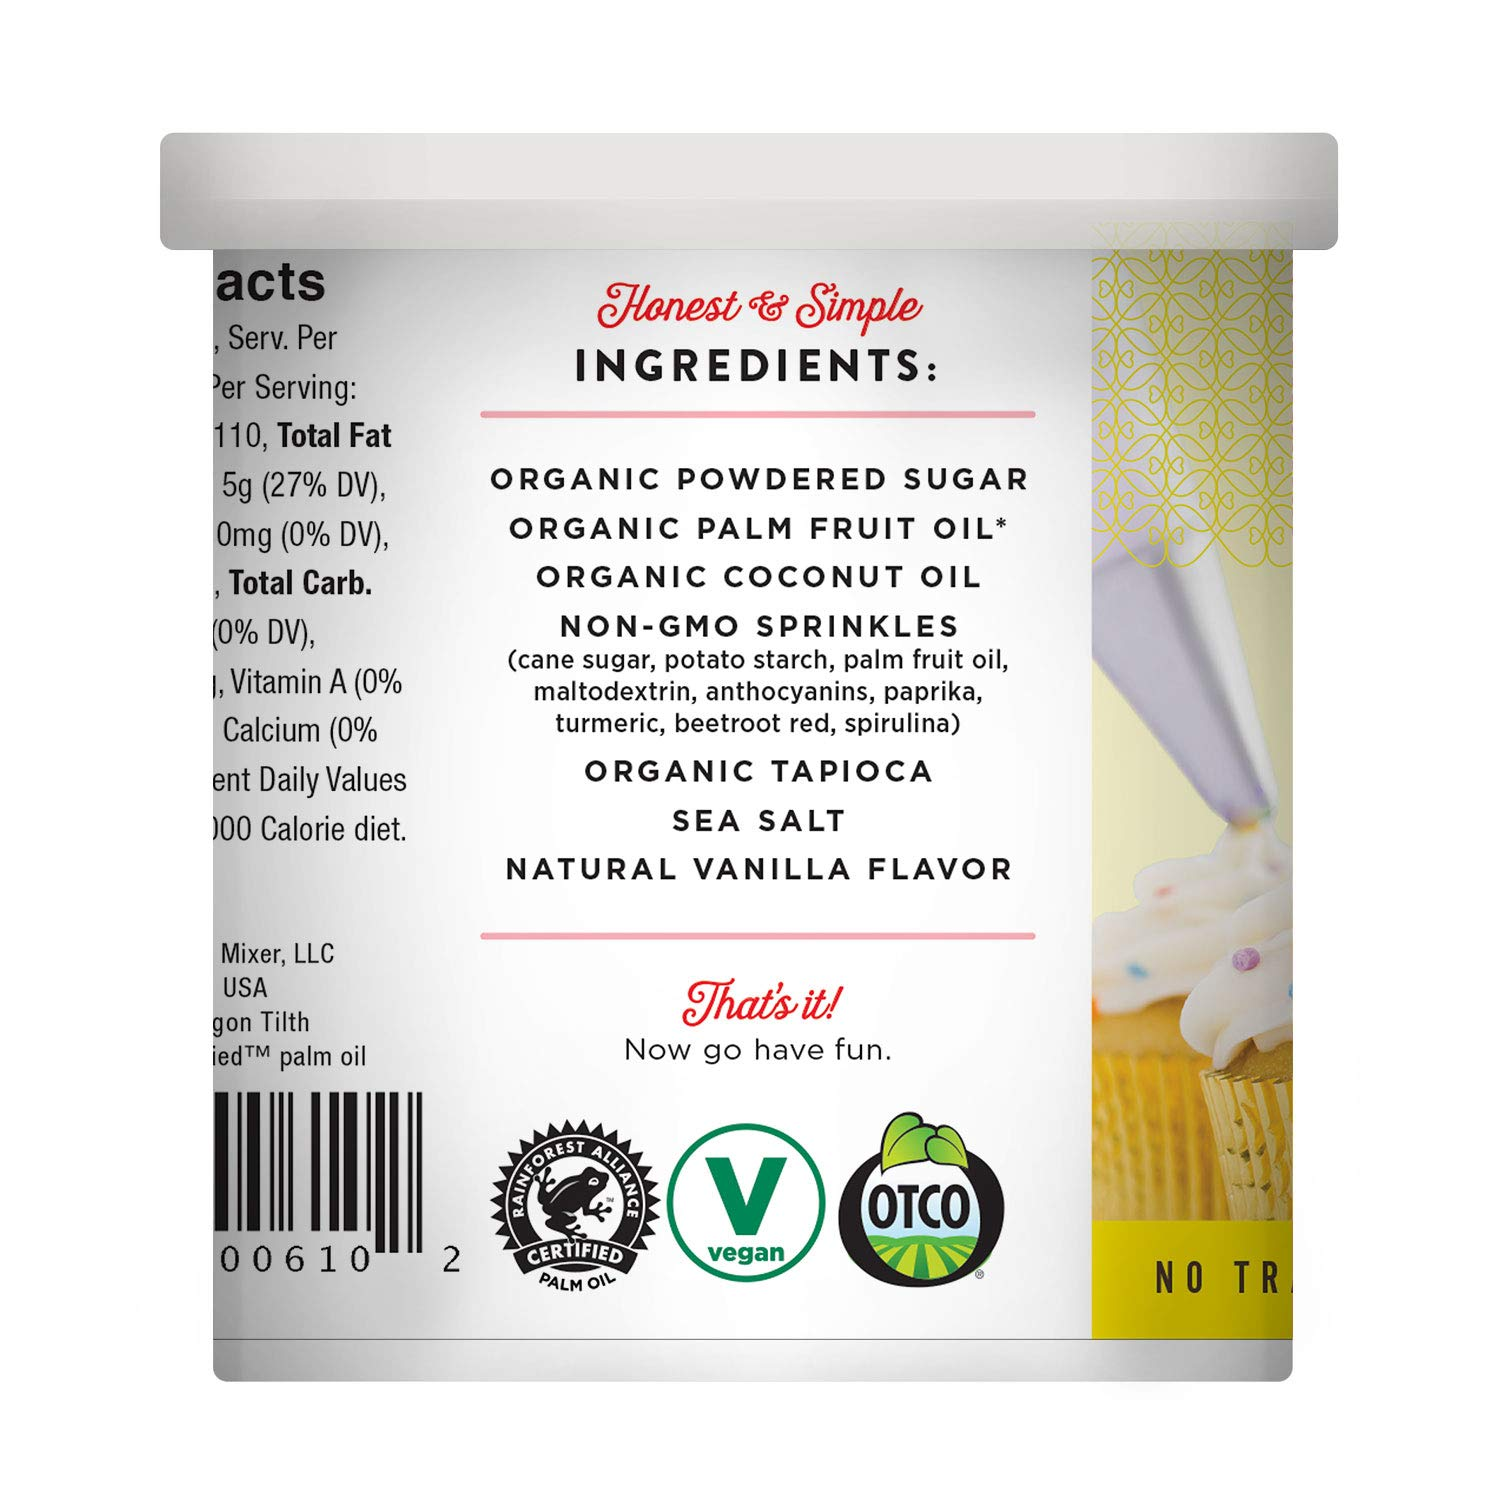 Miss Jones Baking 90% Organic Birthday Buttercream Frosting, Perfect for Icing and Decorating, Vegan-Friendly: Confetti Pop (Pack of 6) by Miss Jones Baking (Image #14)